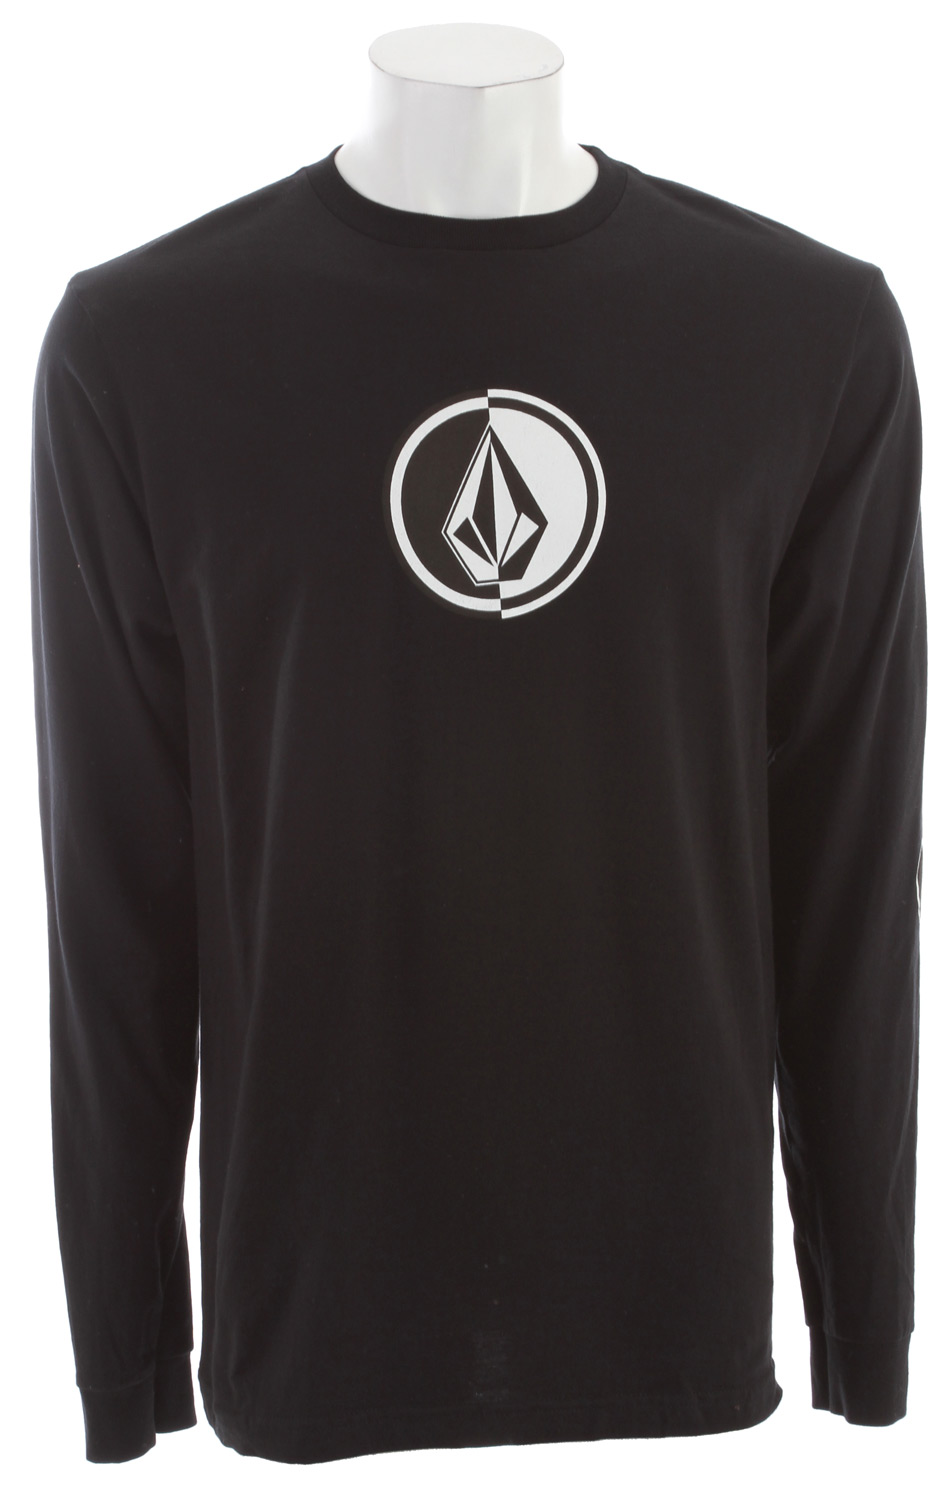 Surf Key Features of the Volcom Circle Stone L/S T-Shirt: Basic screenprint Basic Fit 100% Cotton - $25.00